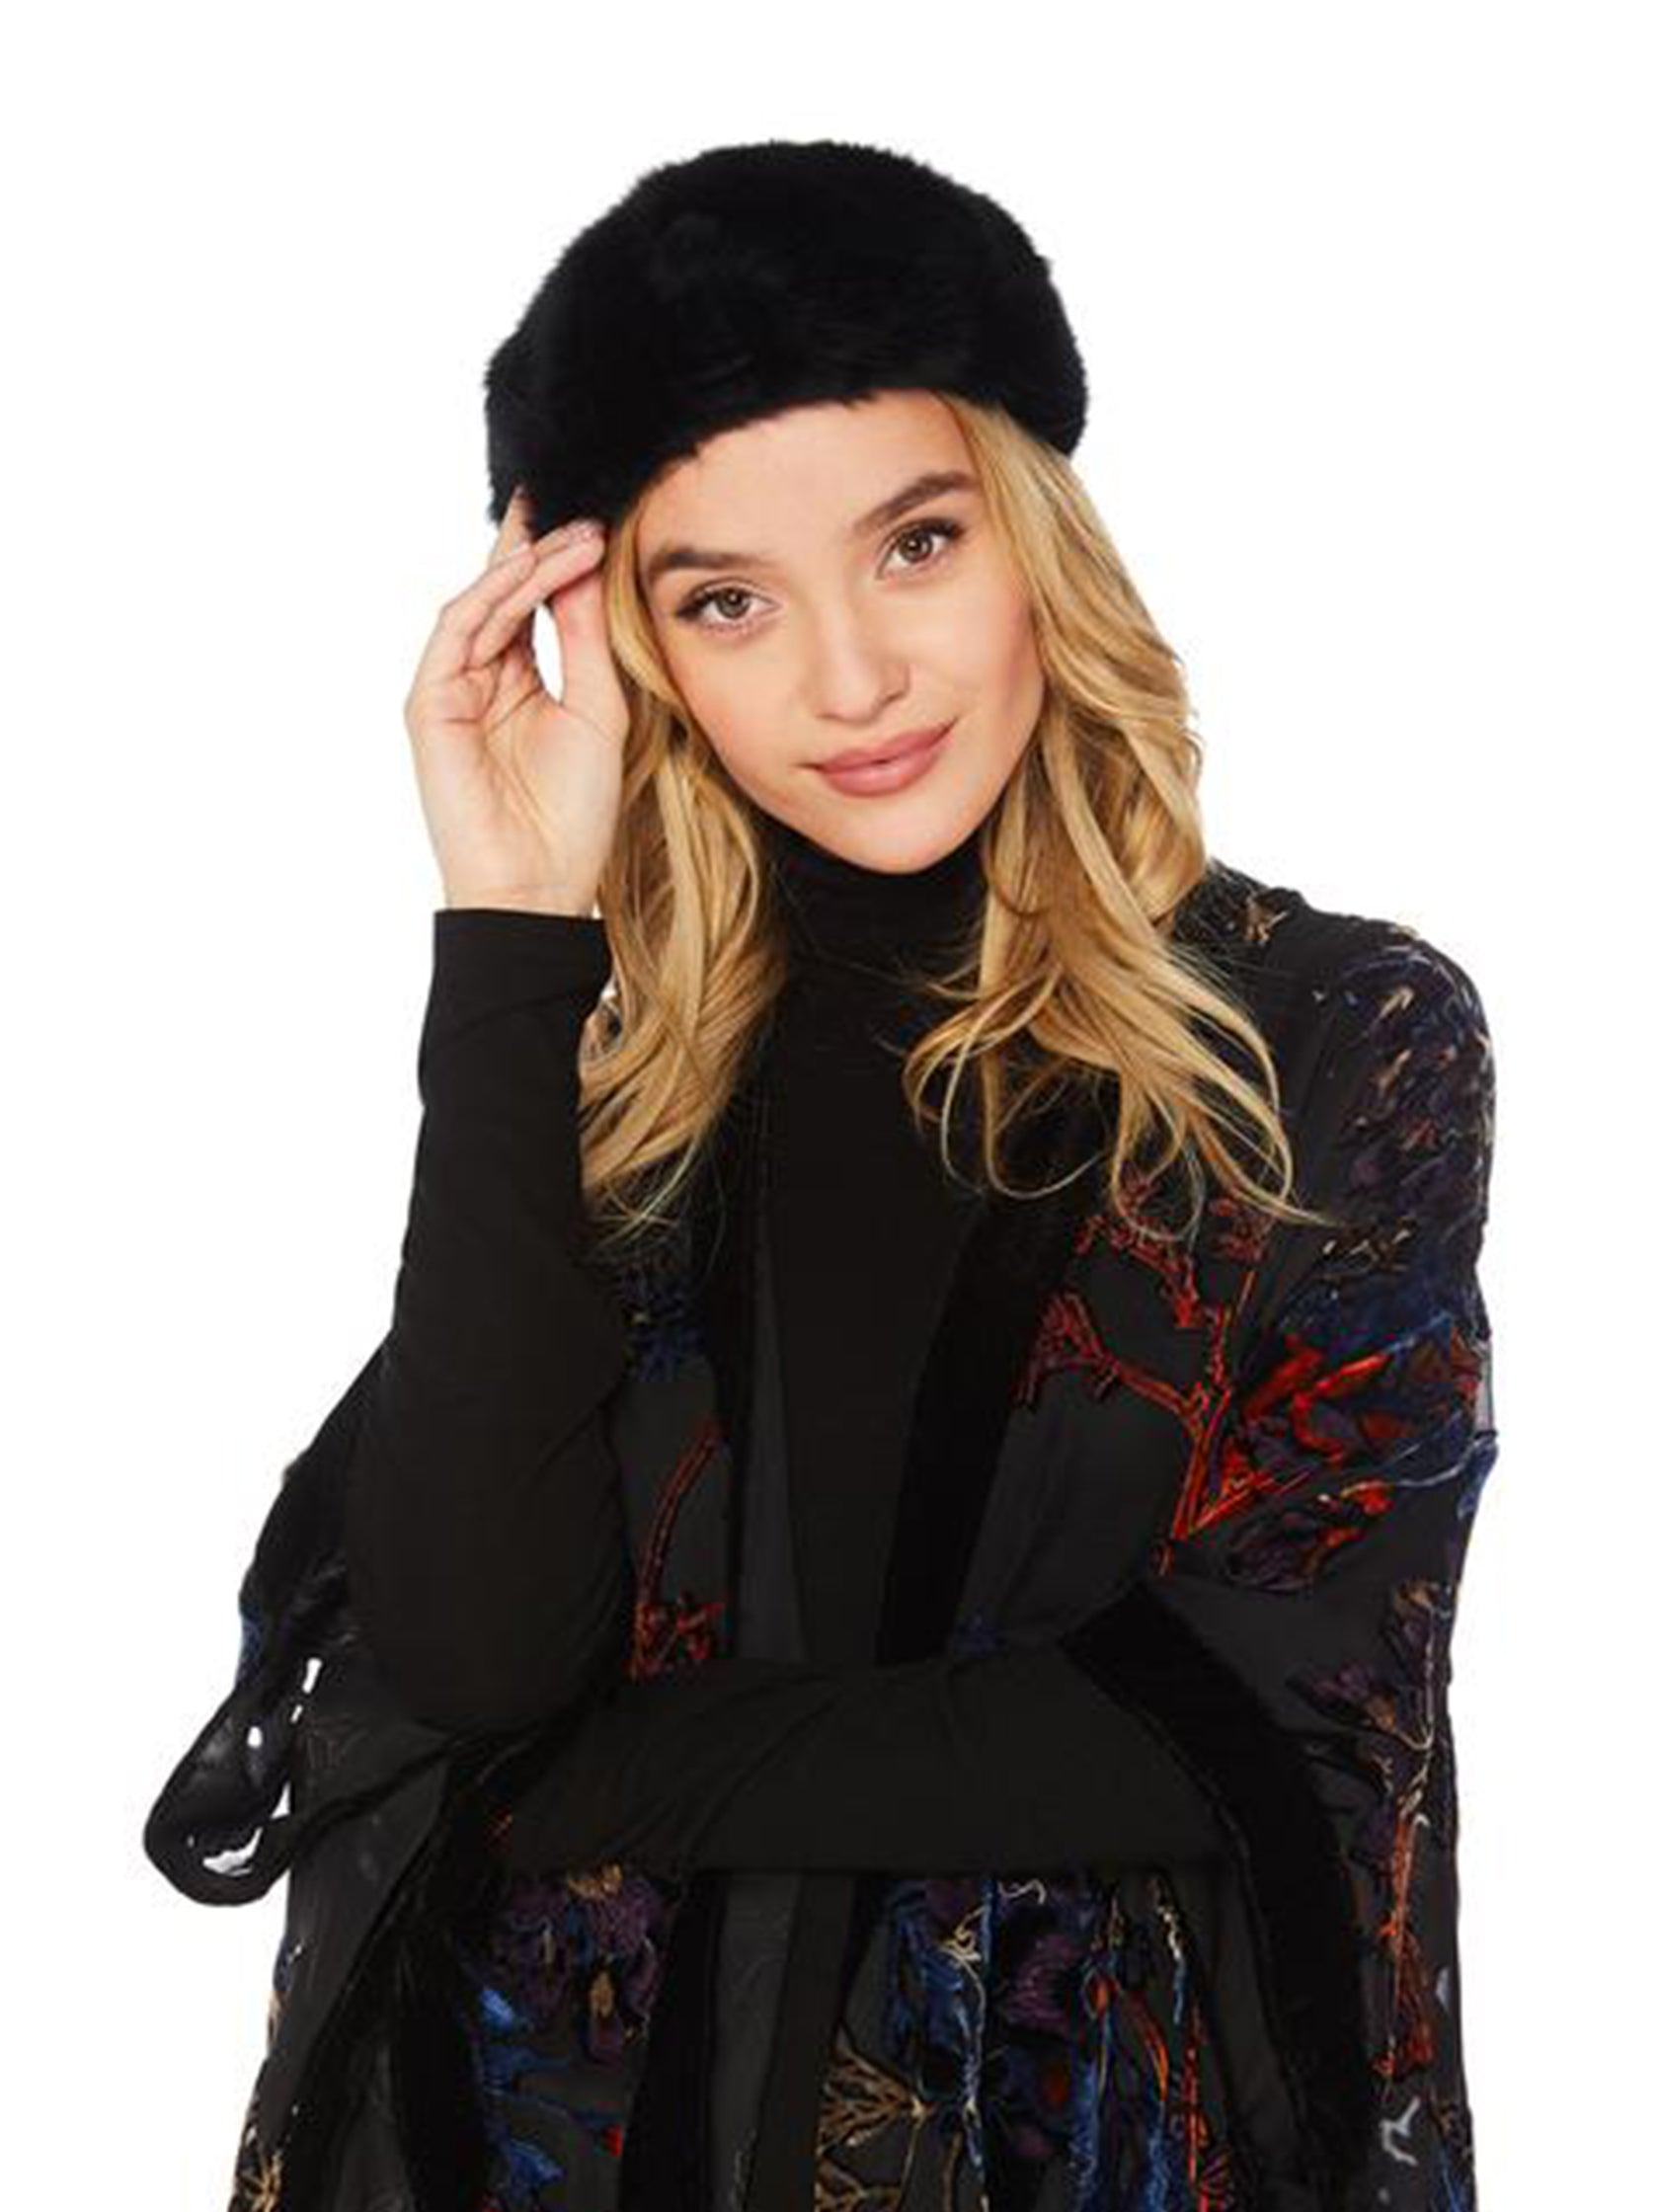 Girl wearing a hat rental from Michael Stars called Fuzzy Beret